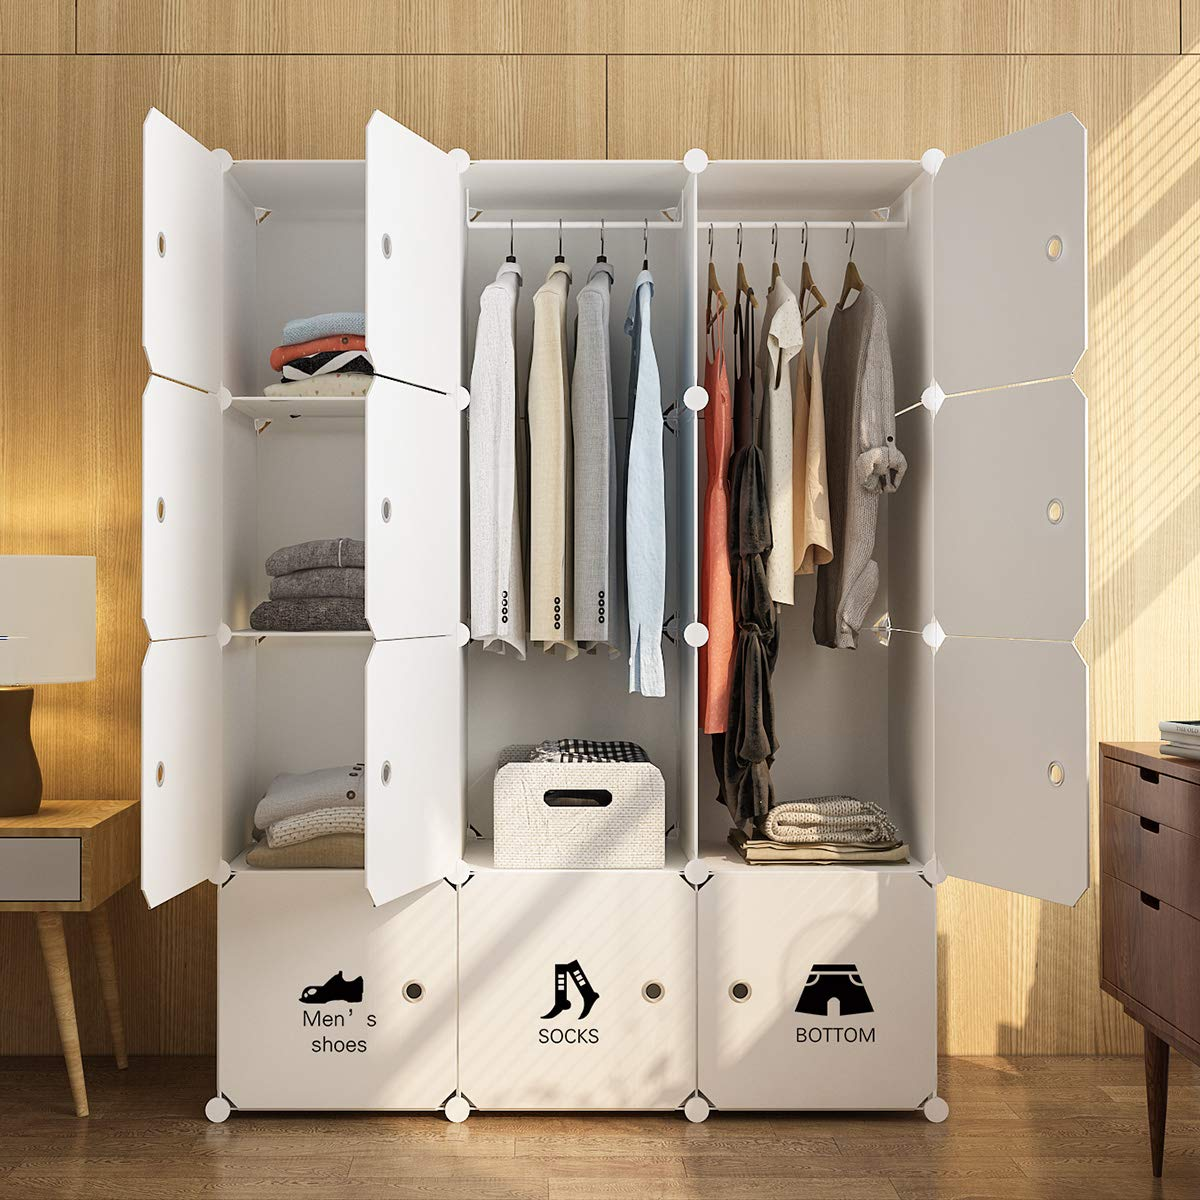 MAGINELS Portable Wardrobe Closet Armoire Cube Storage Organizer for Clothes Bedroom with Drawer White by MAGINELS